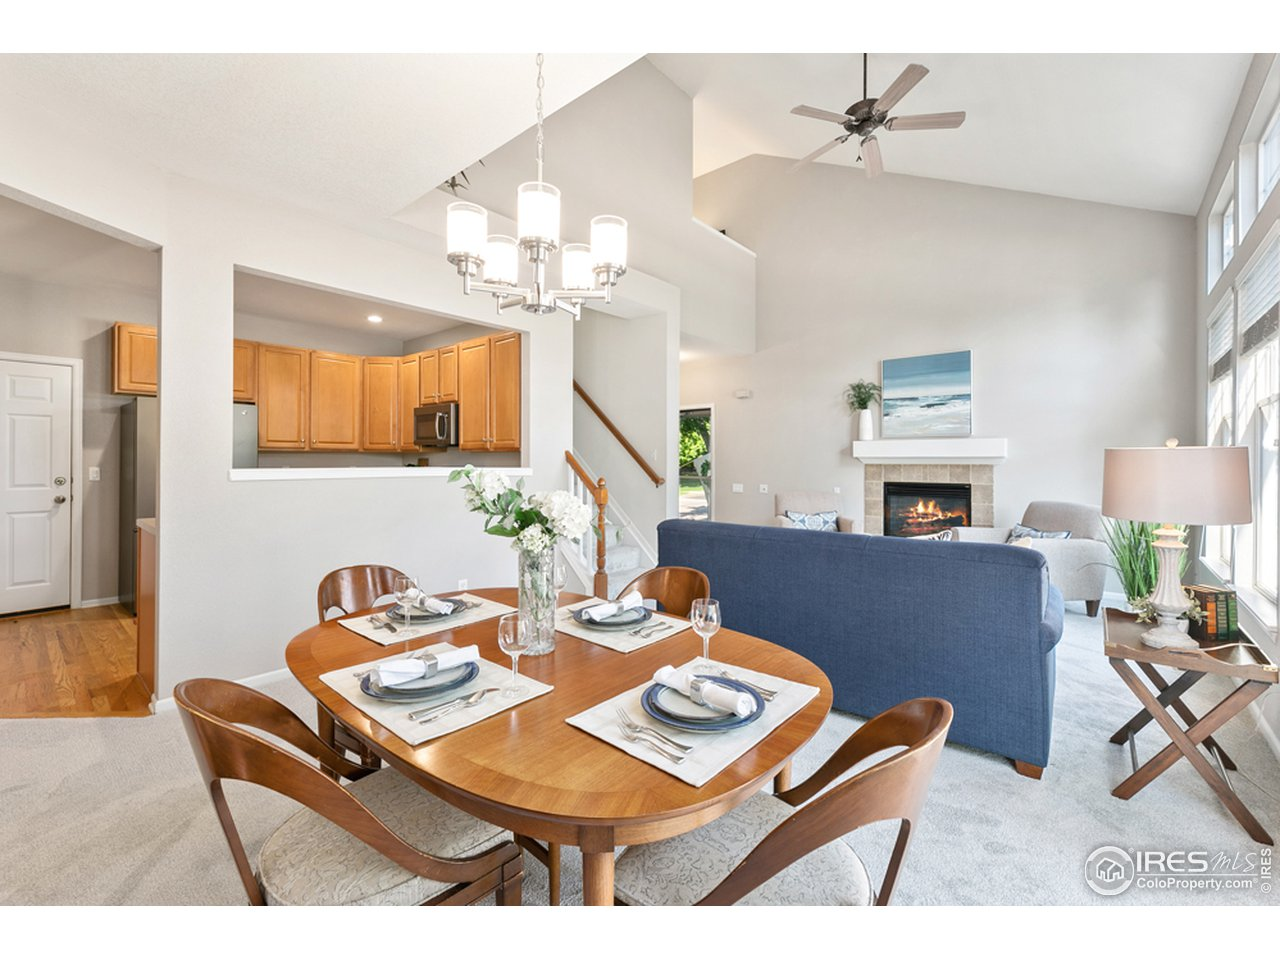 Open Concept - Great for entertaining